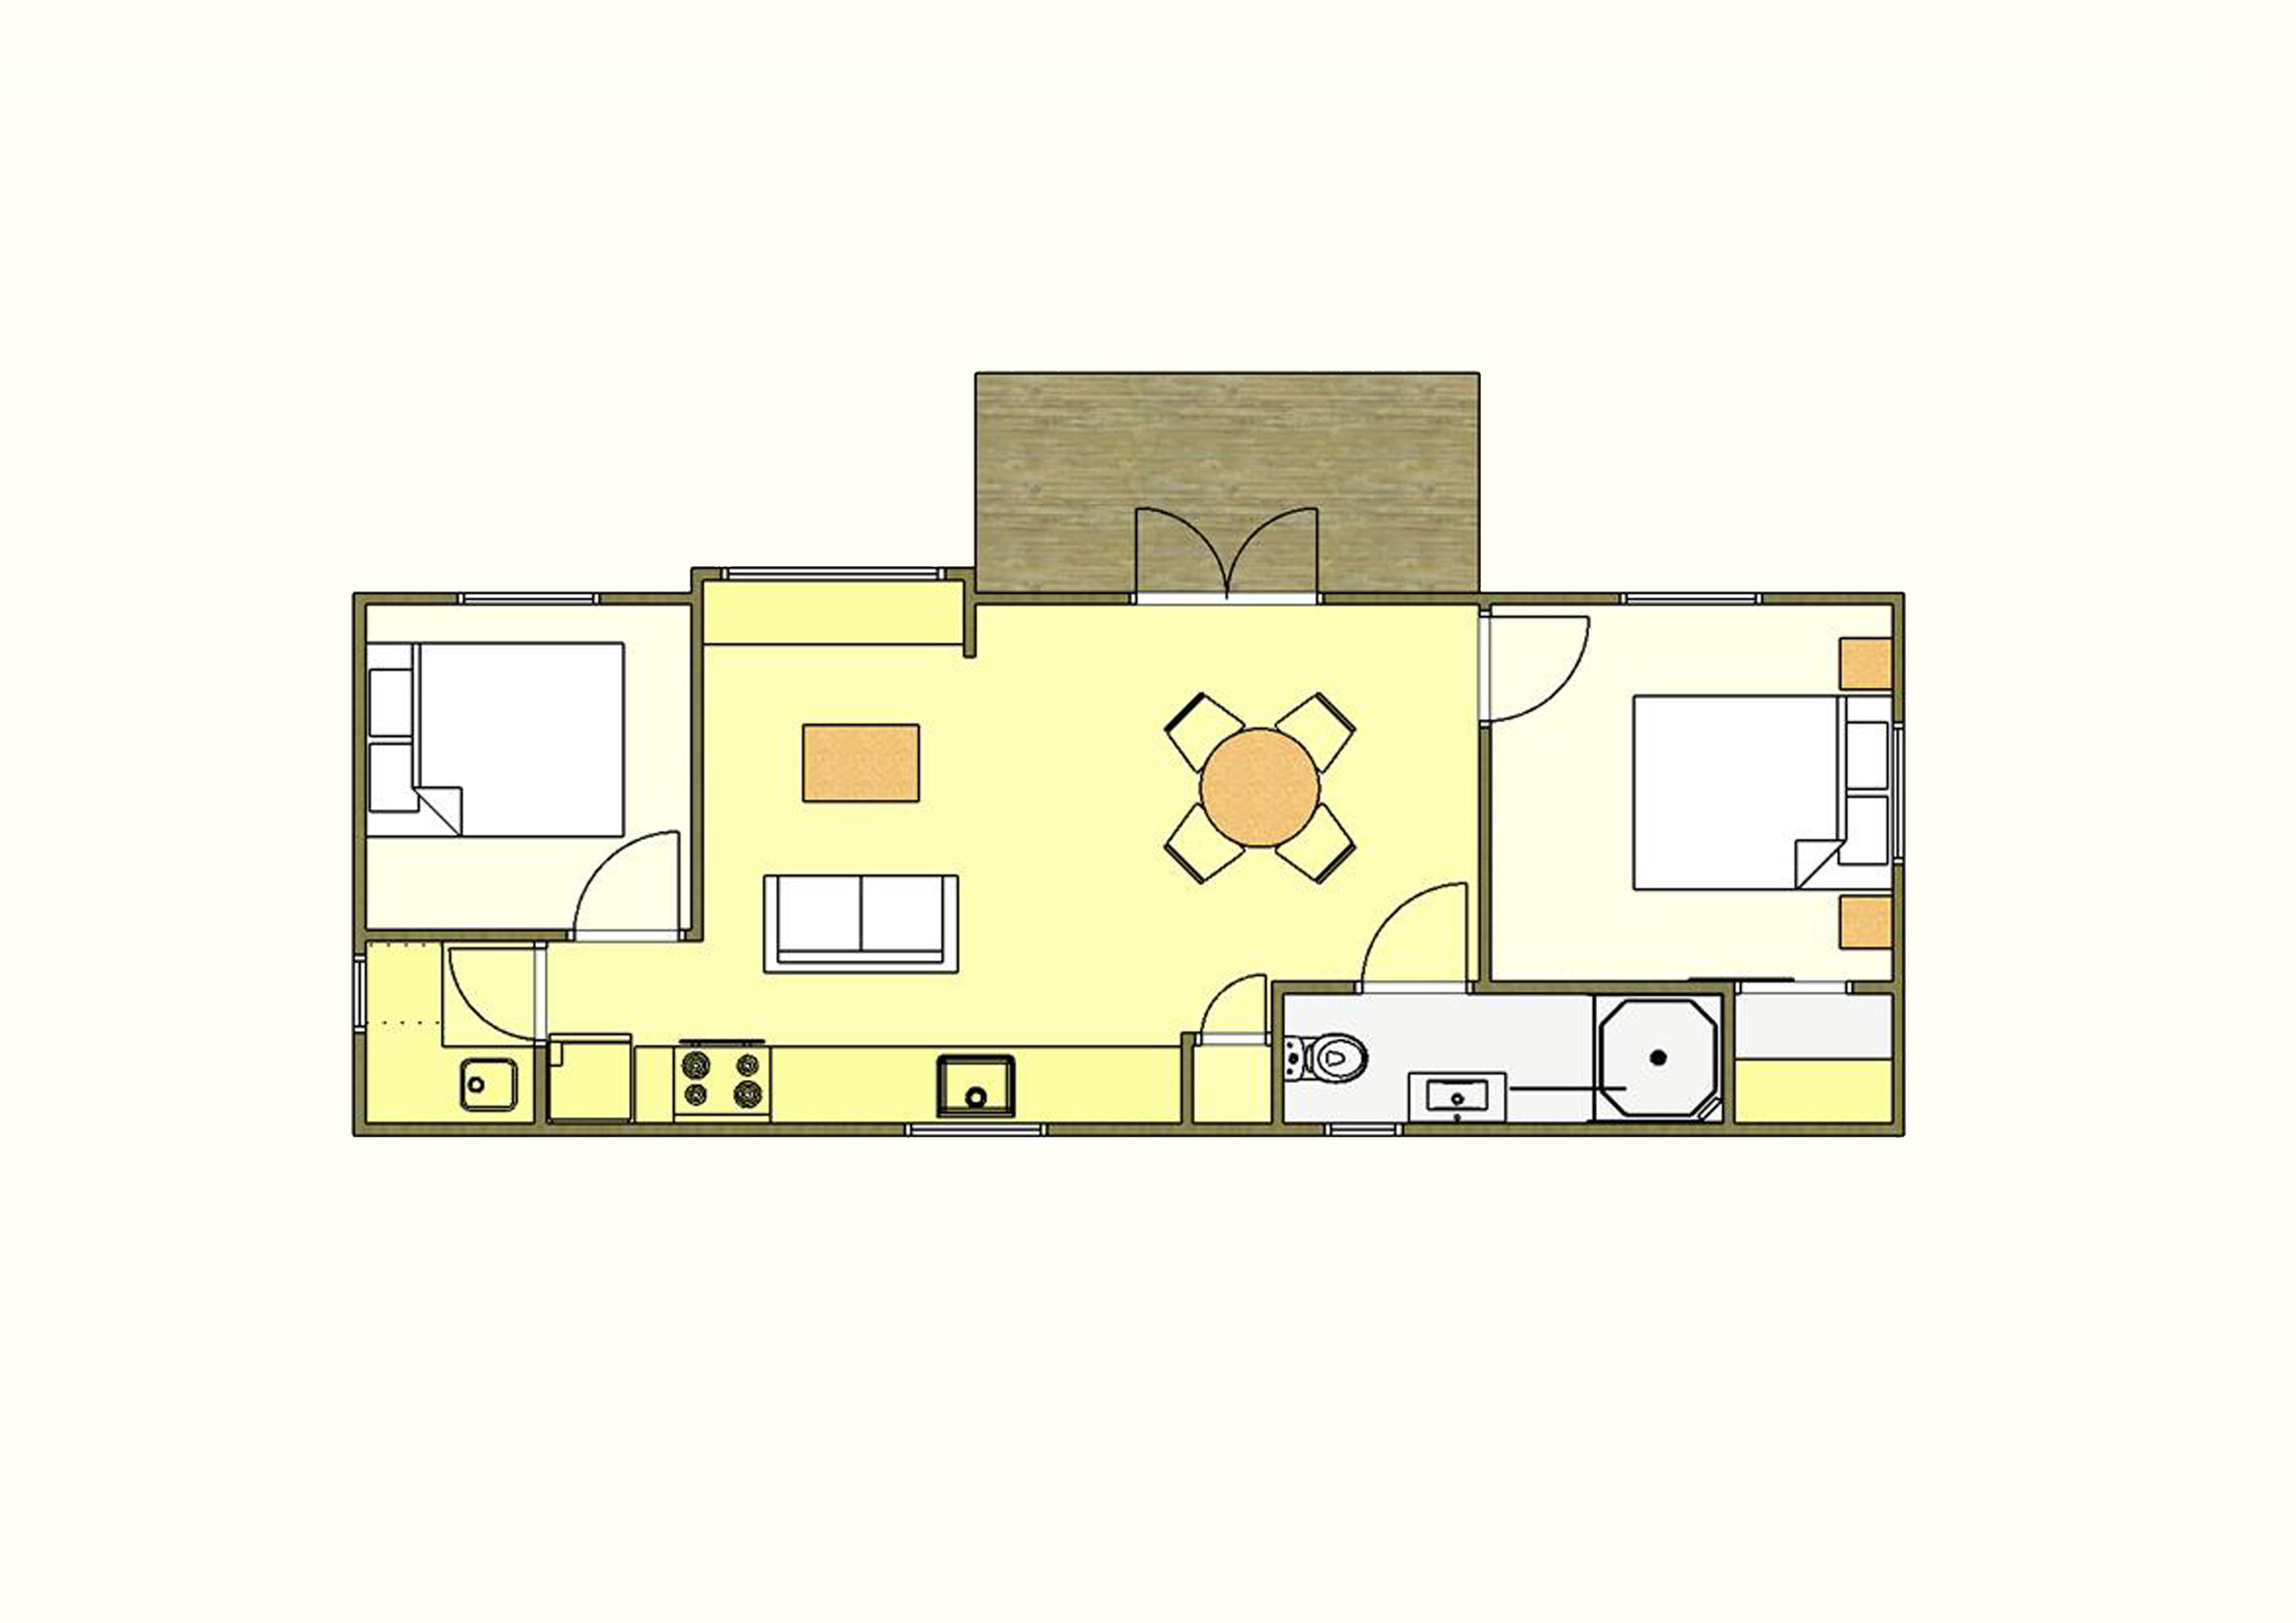 50 sqm Plan Two - 2 Bedroom